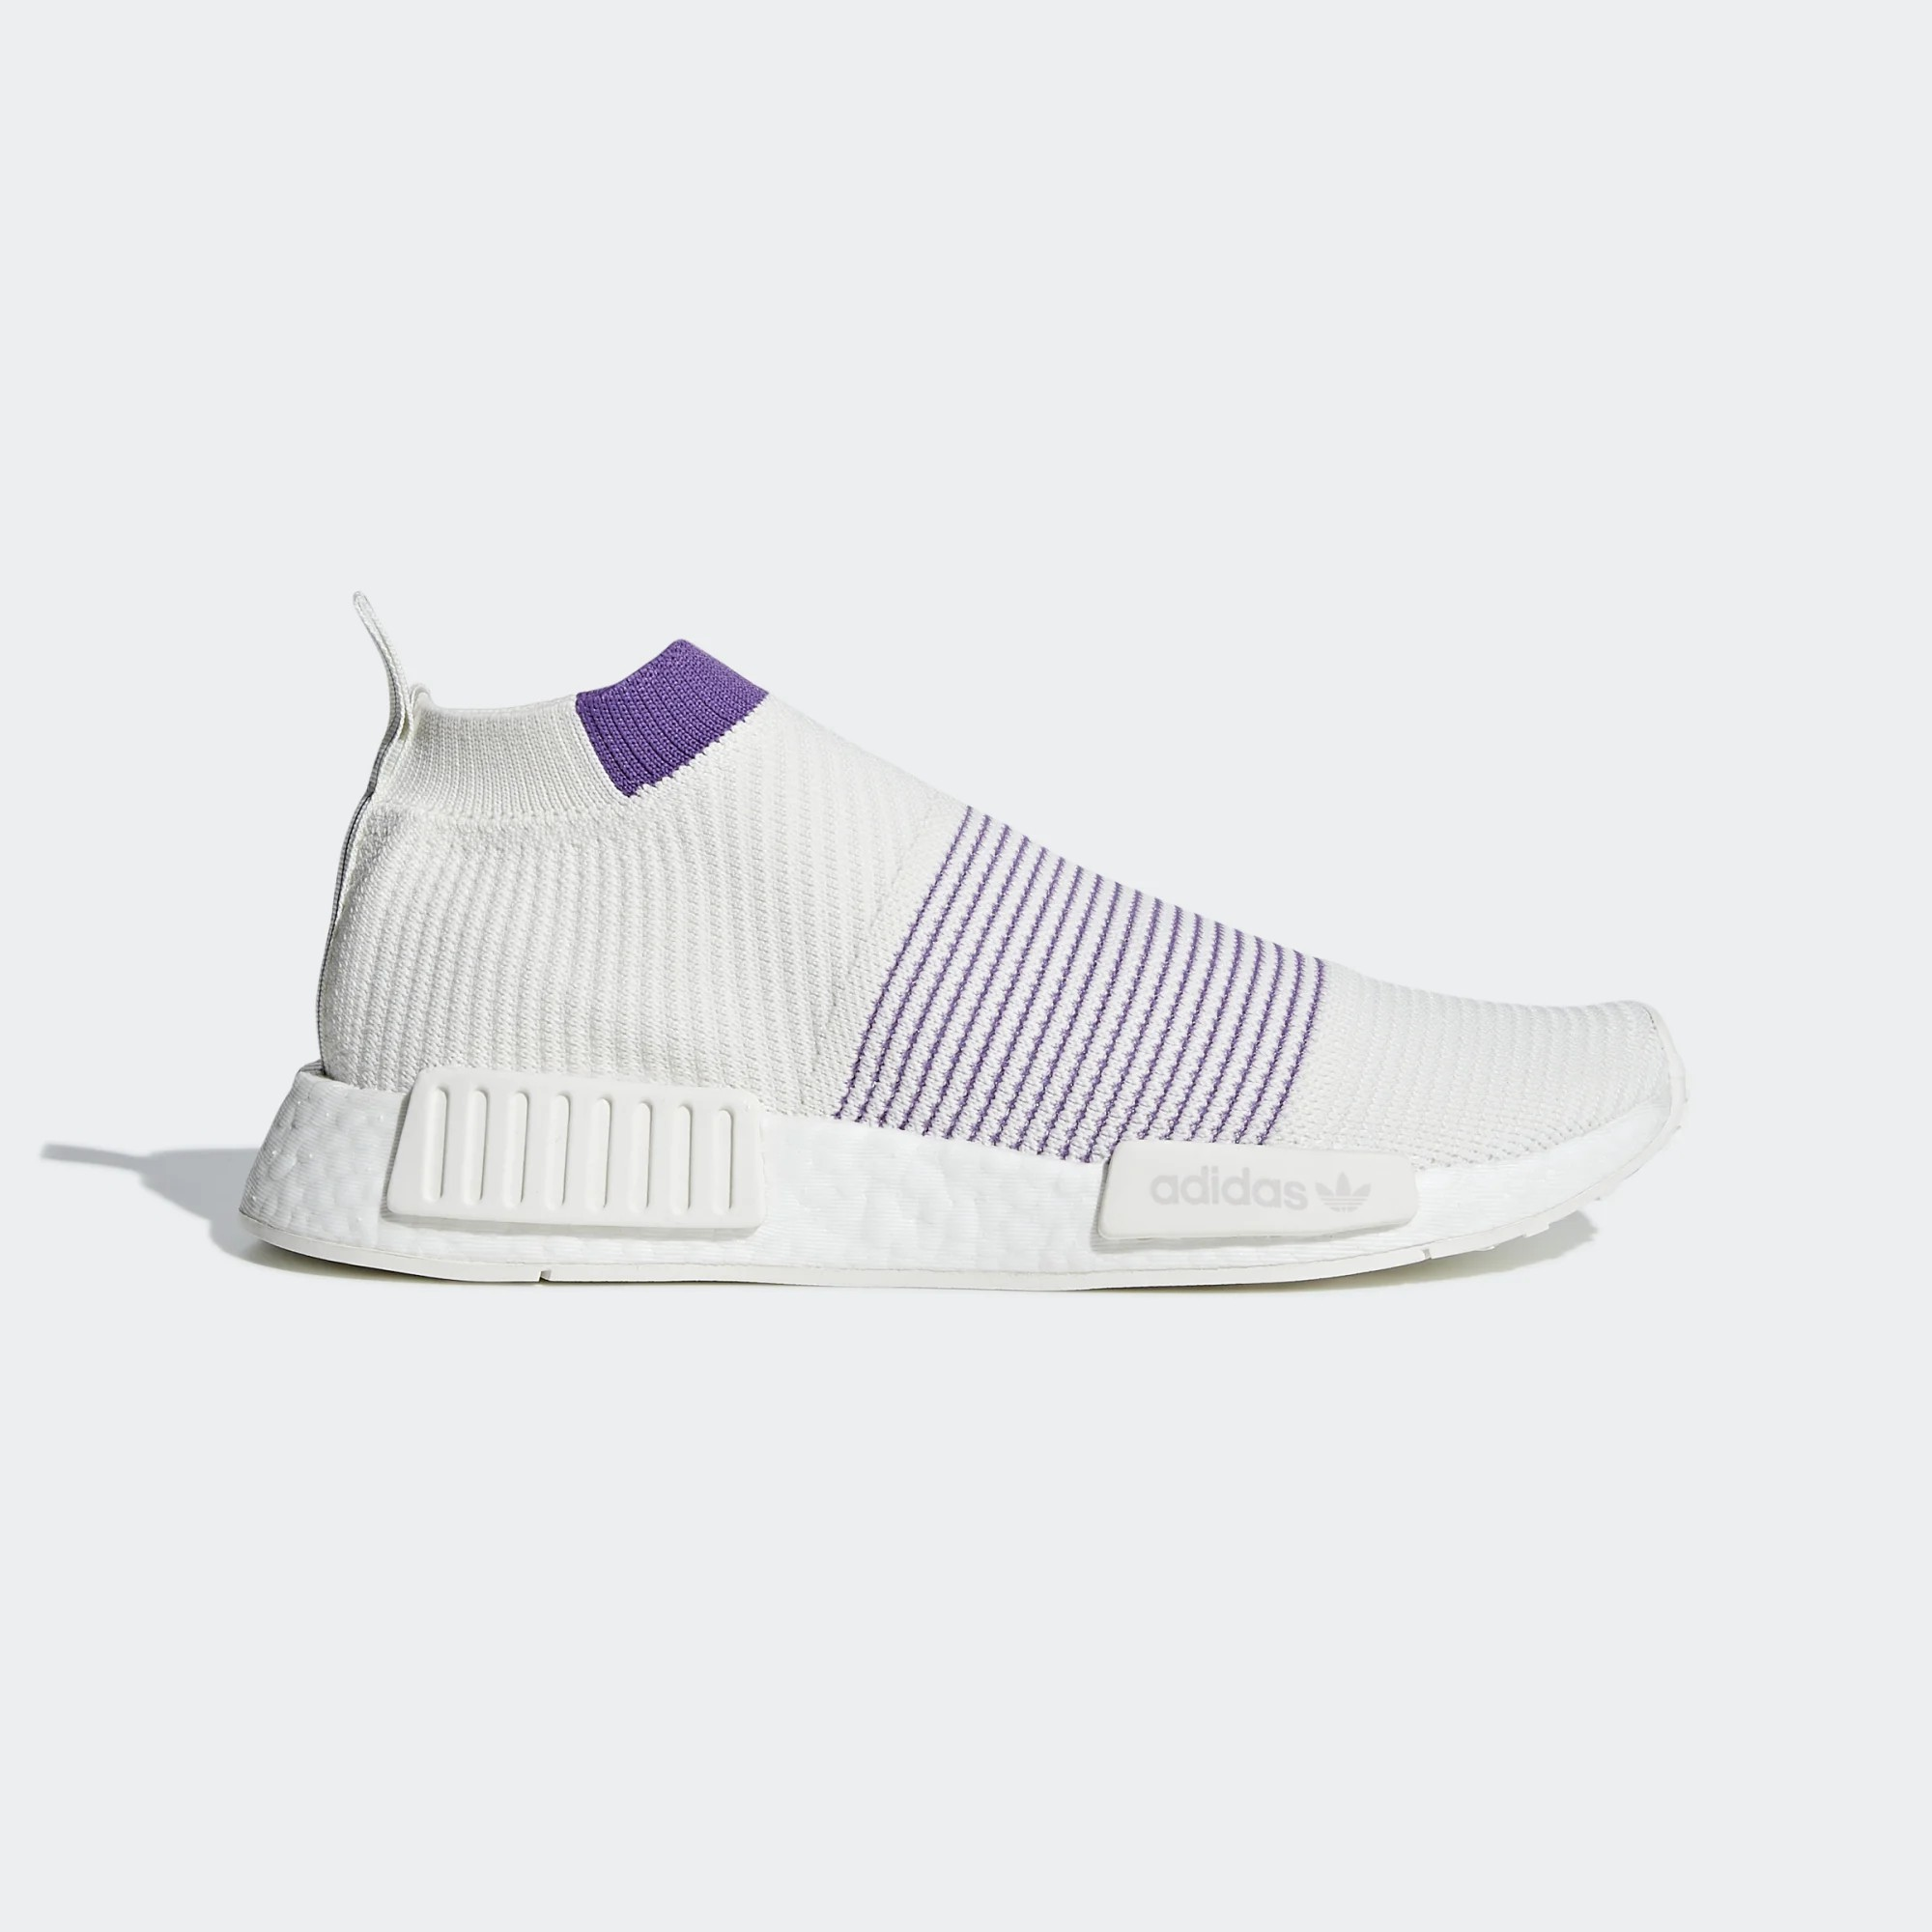 CM8496 adidas NMD CS1 PK W White Purple